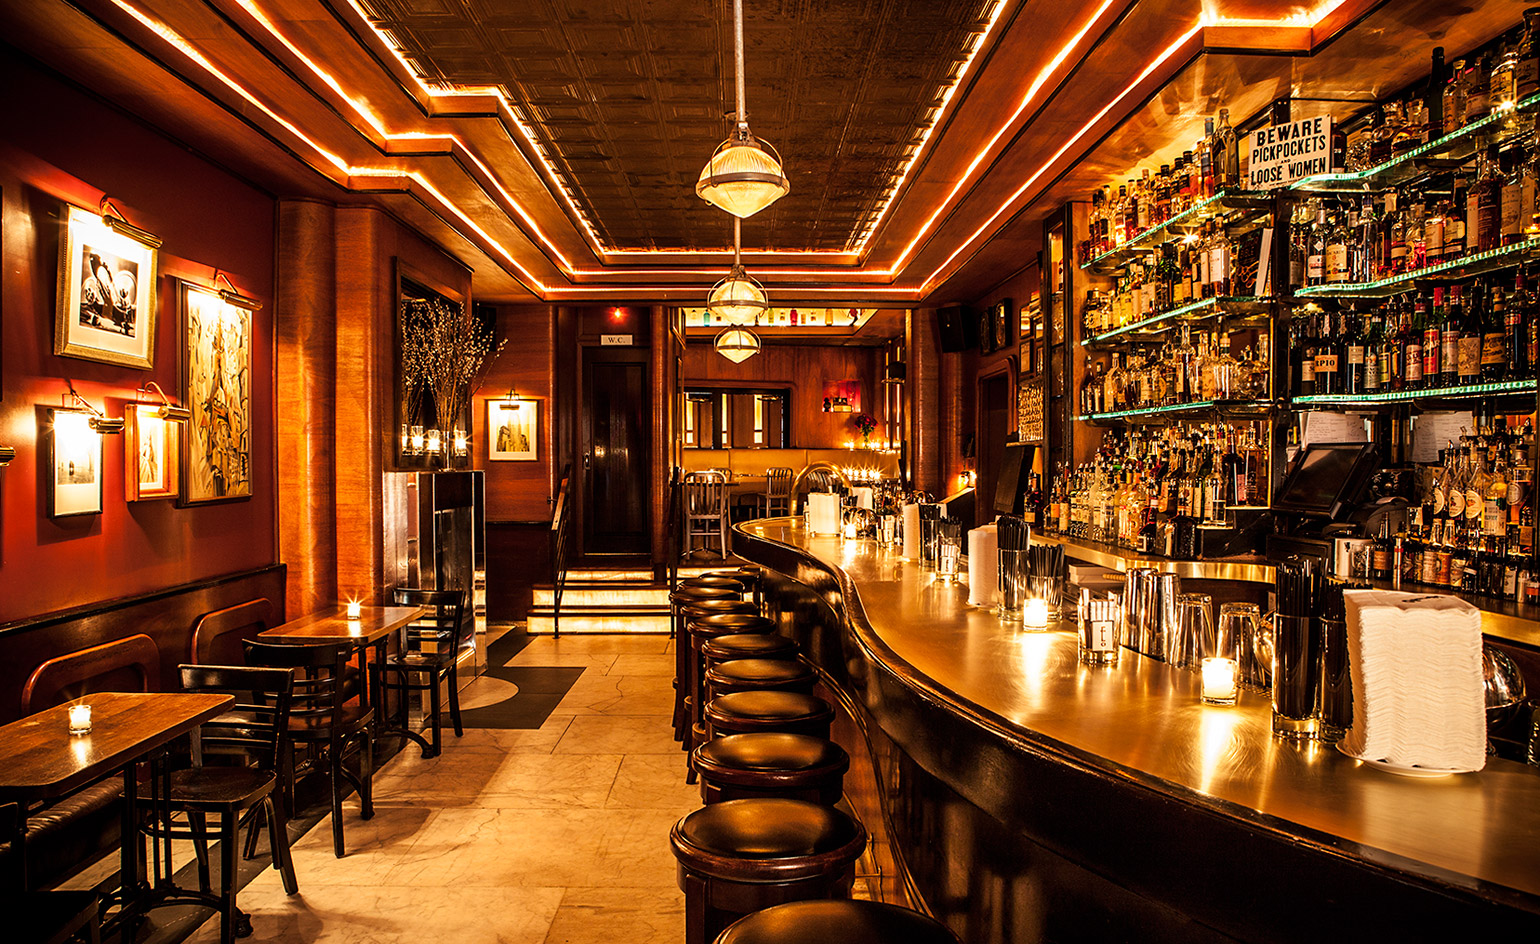 The 13 best NYC hidden bars and secret speakeasies | Wallpaper*